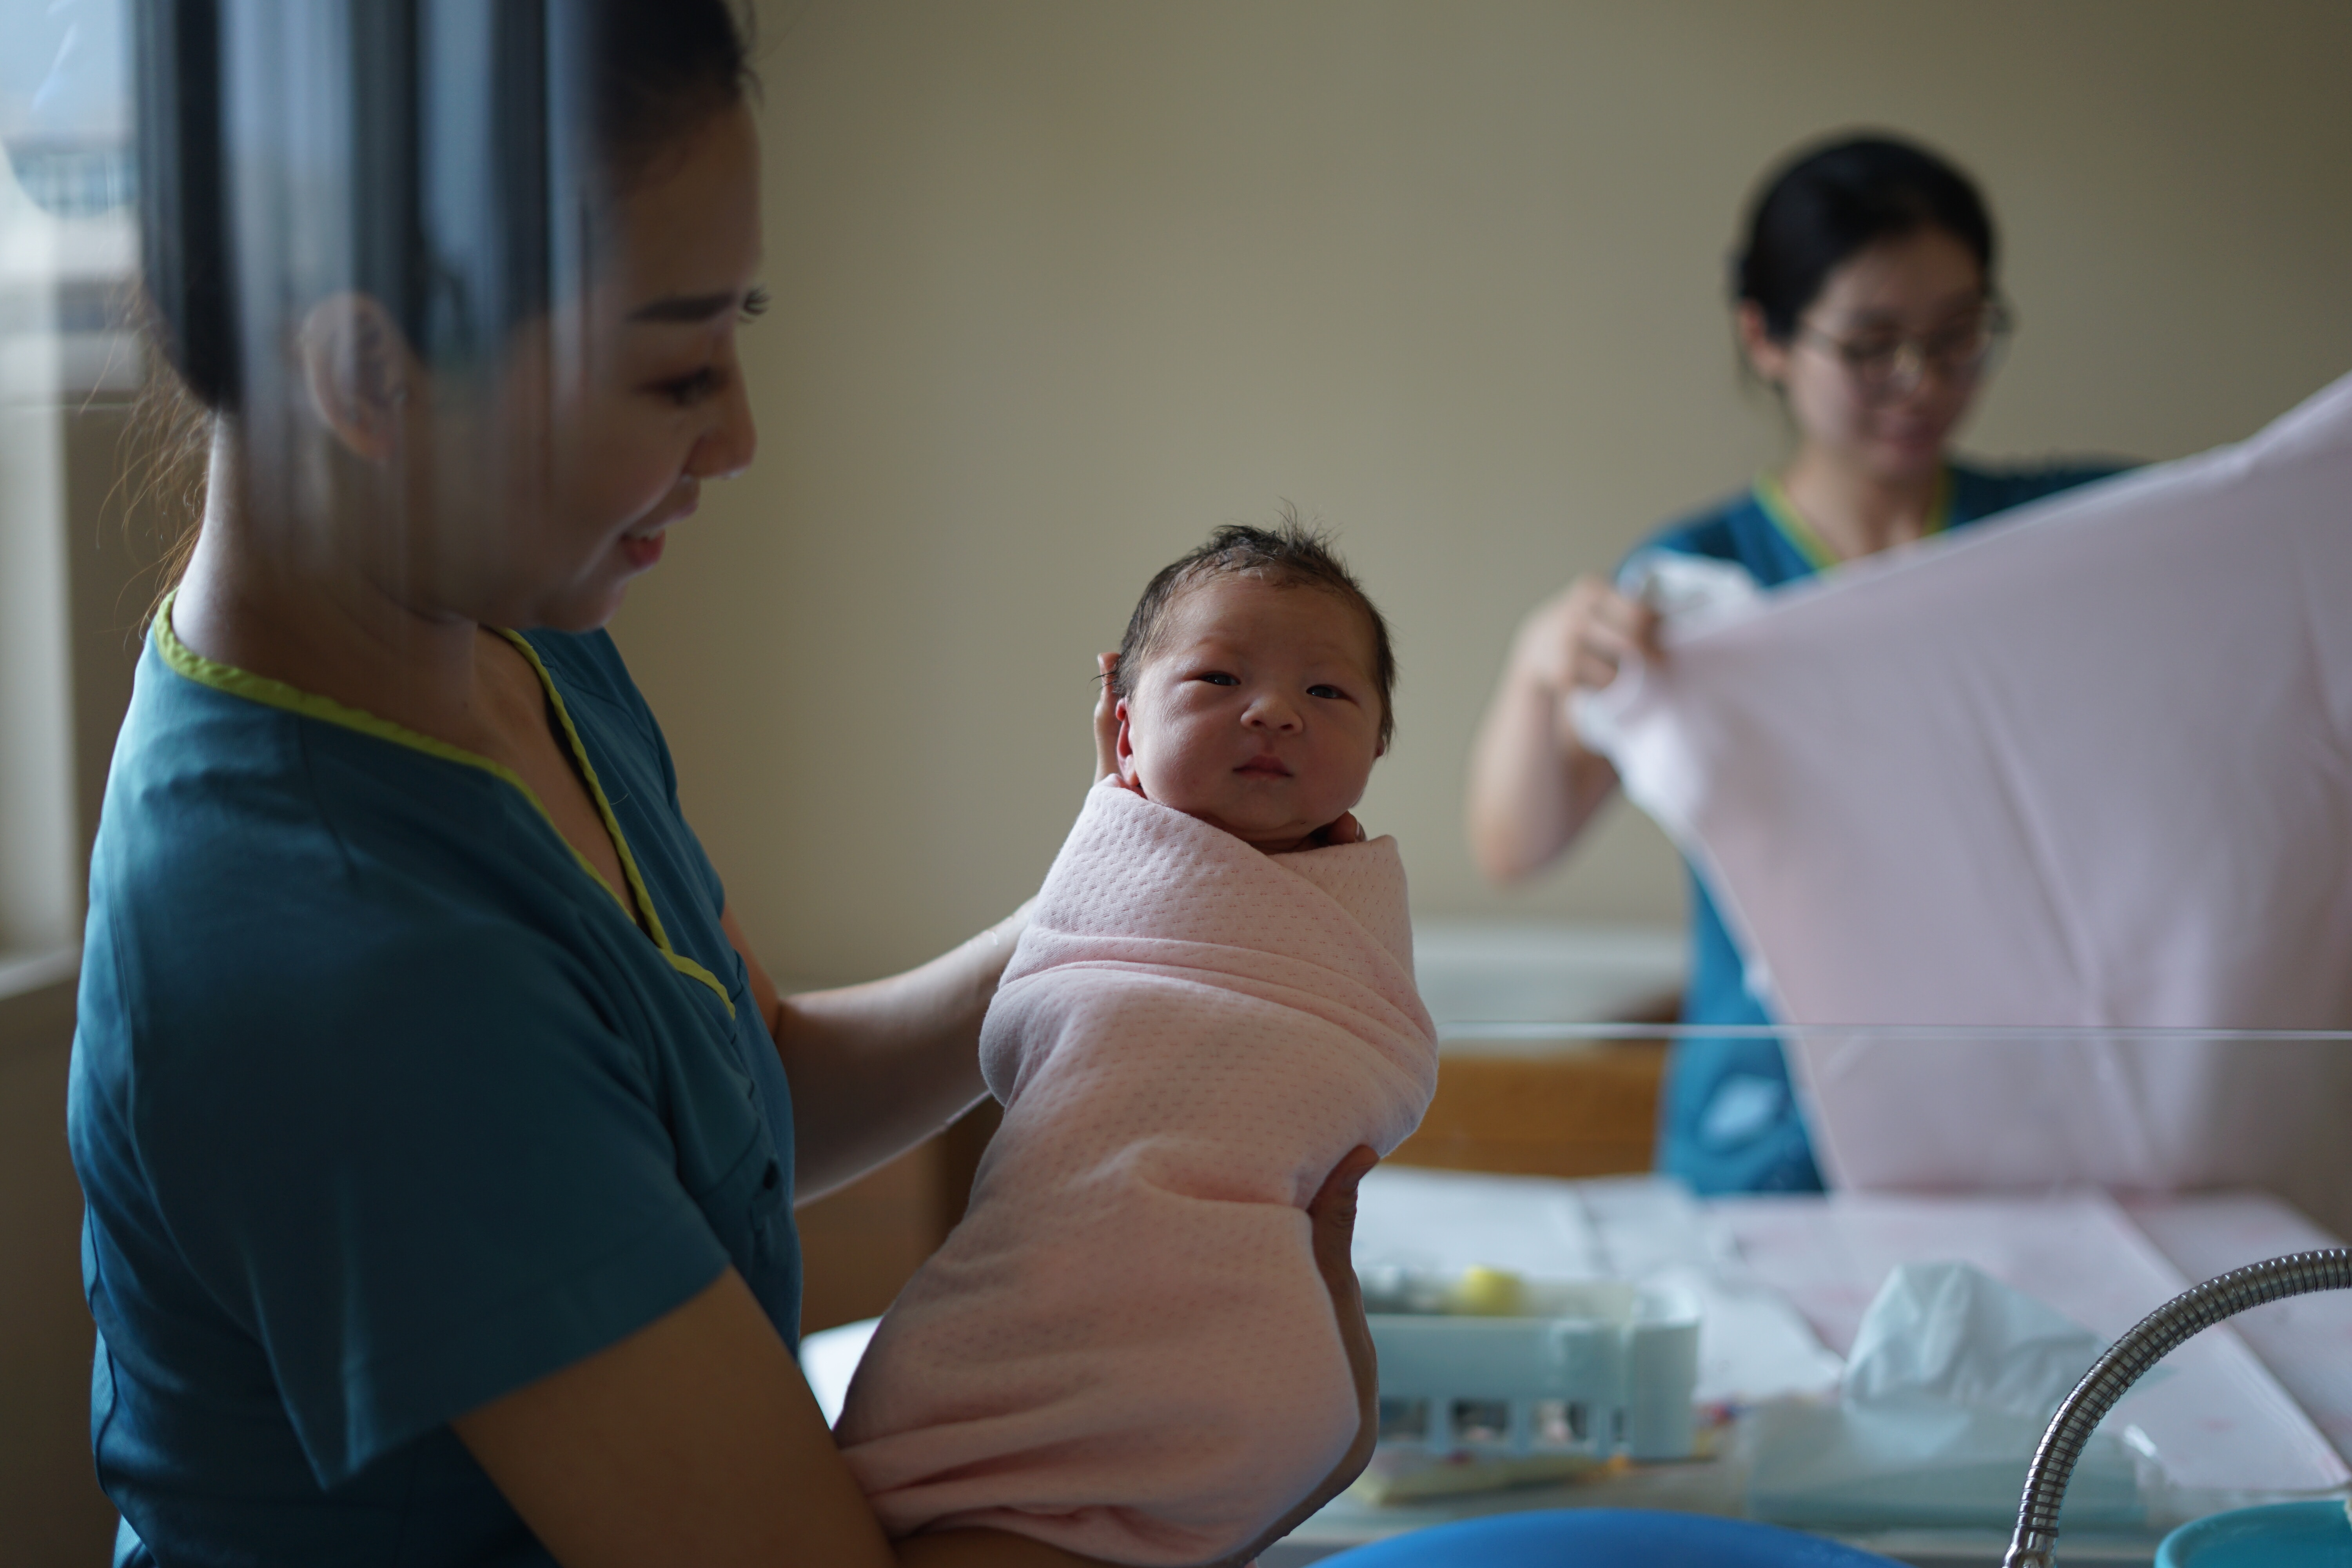 Midwife holding up a swaddled newborn baby